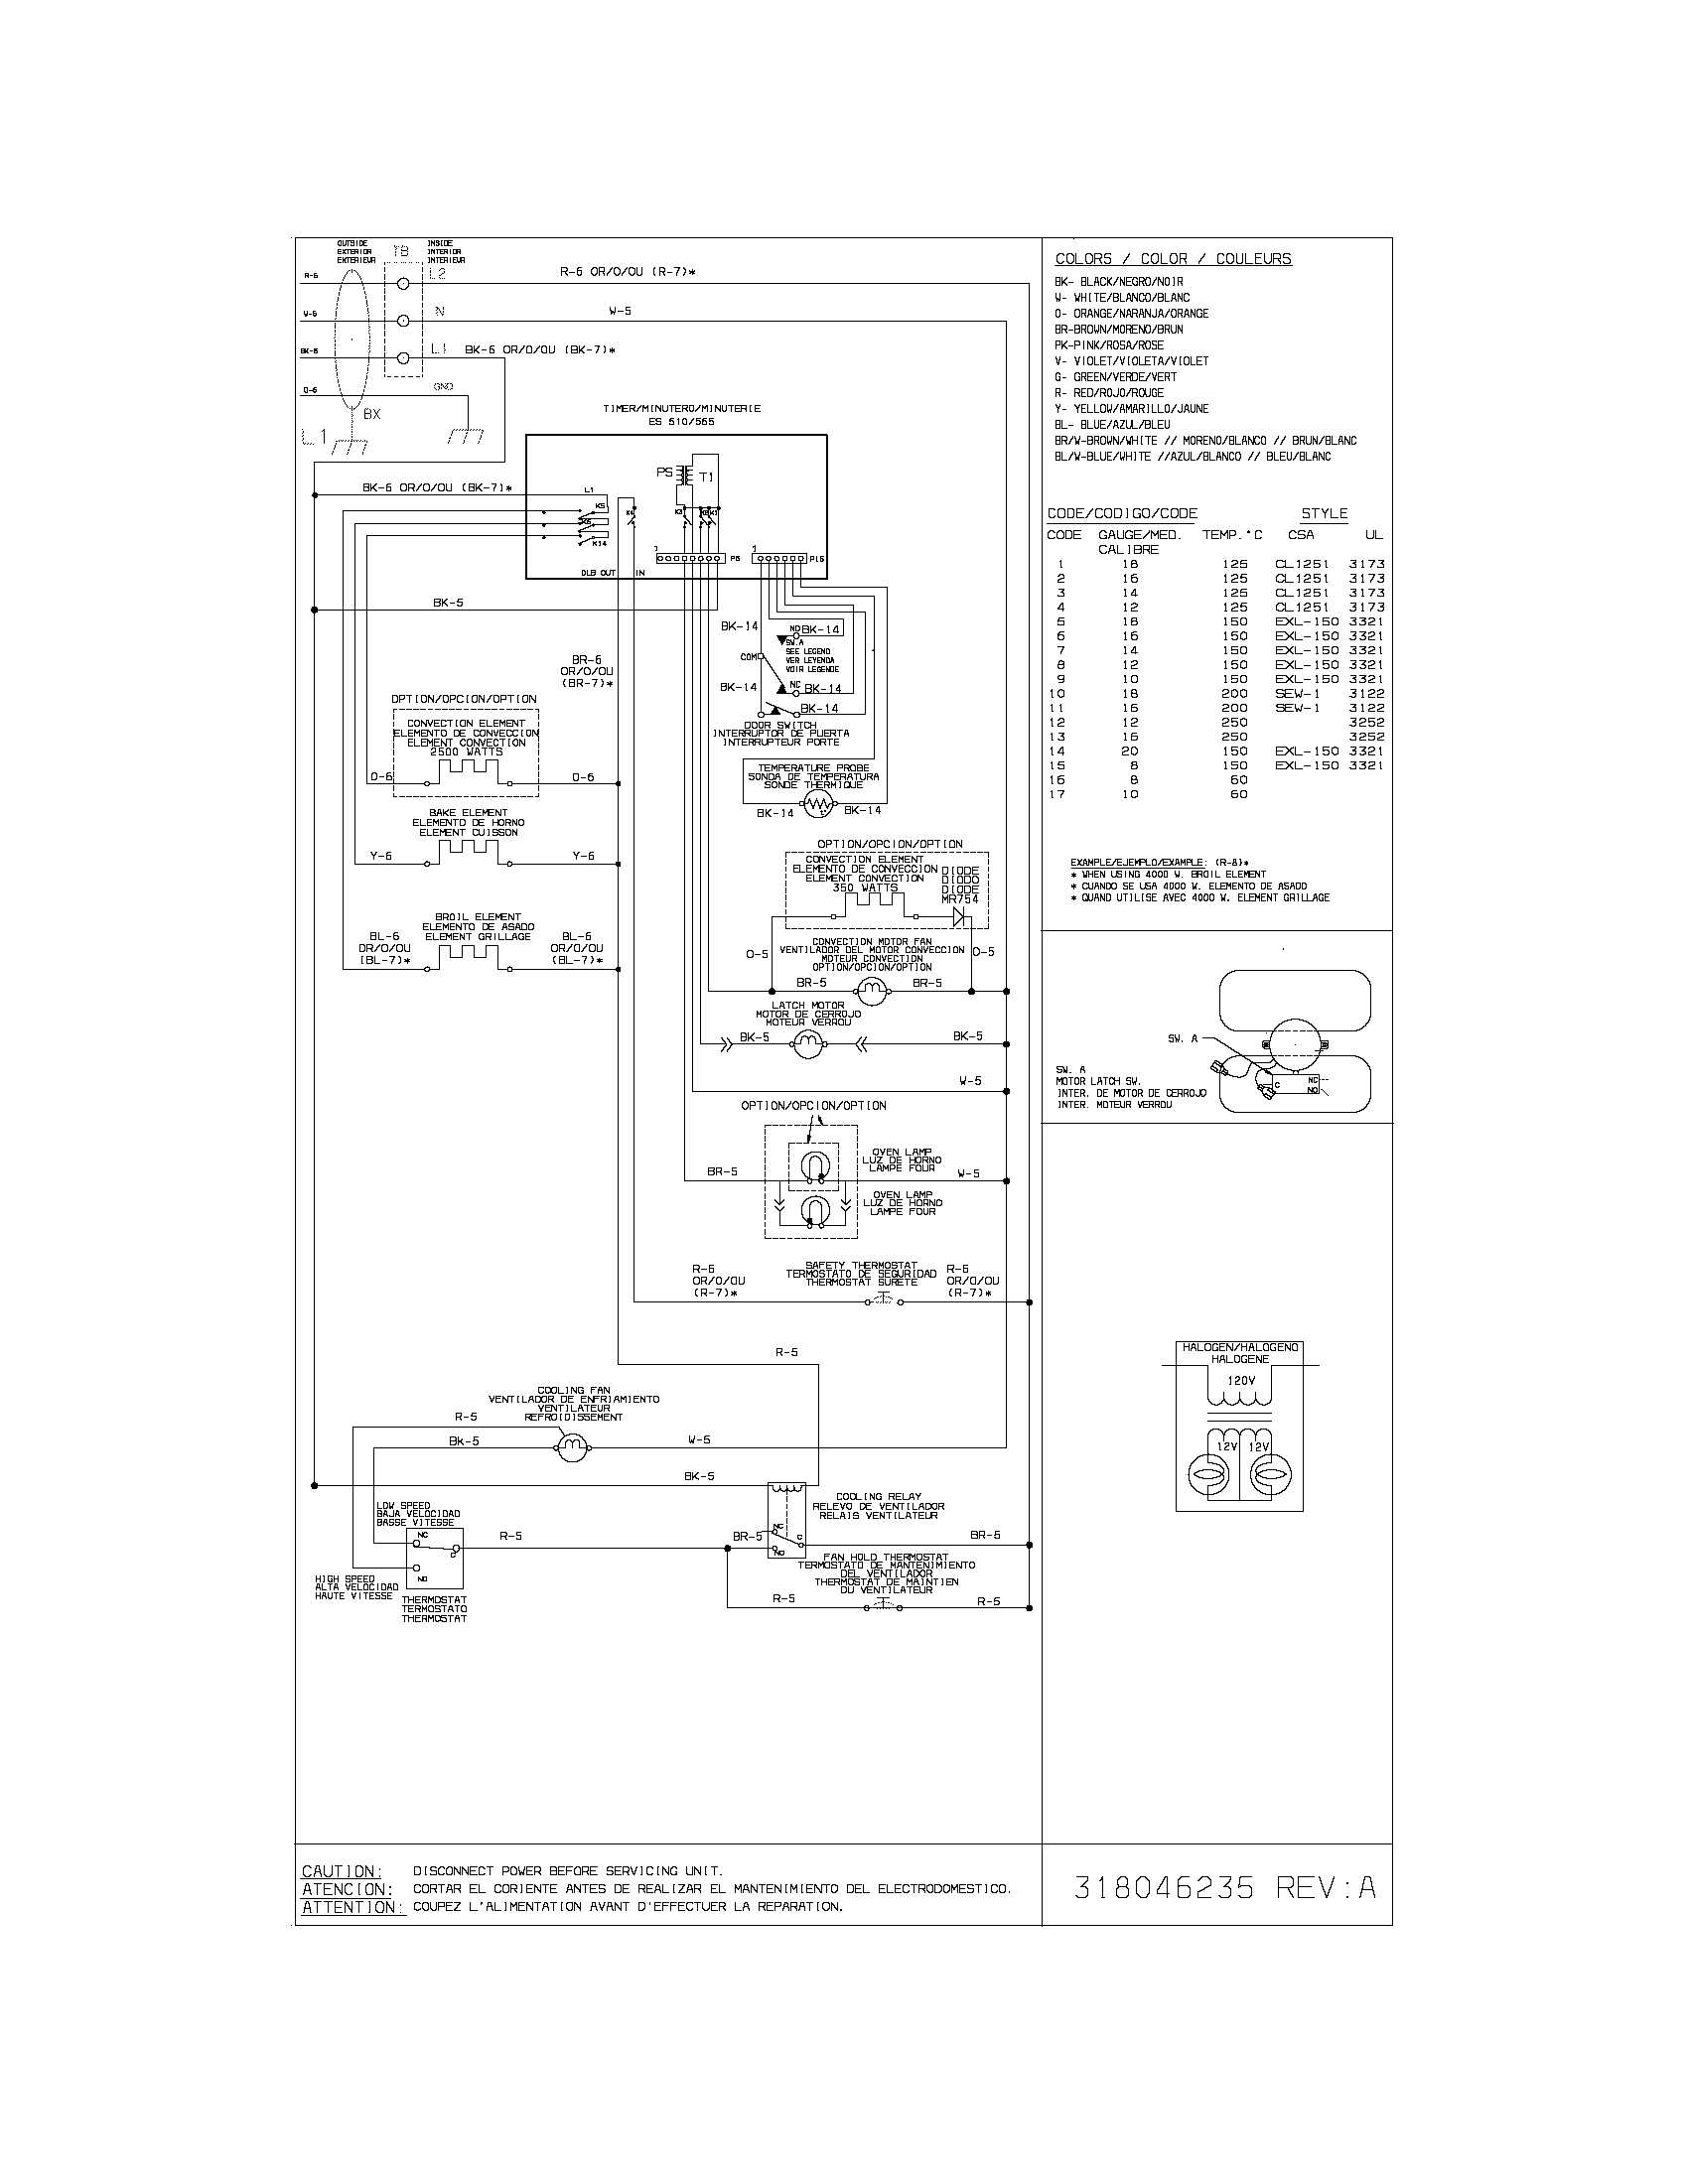 electrolux oven clock instructions